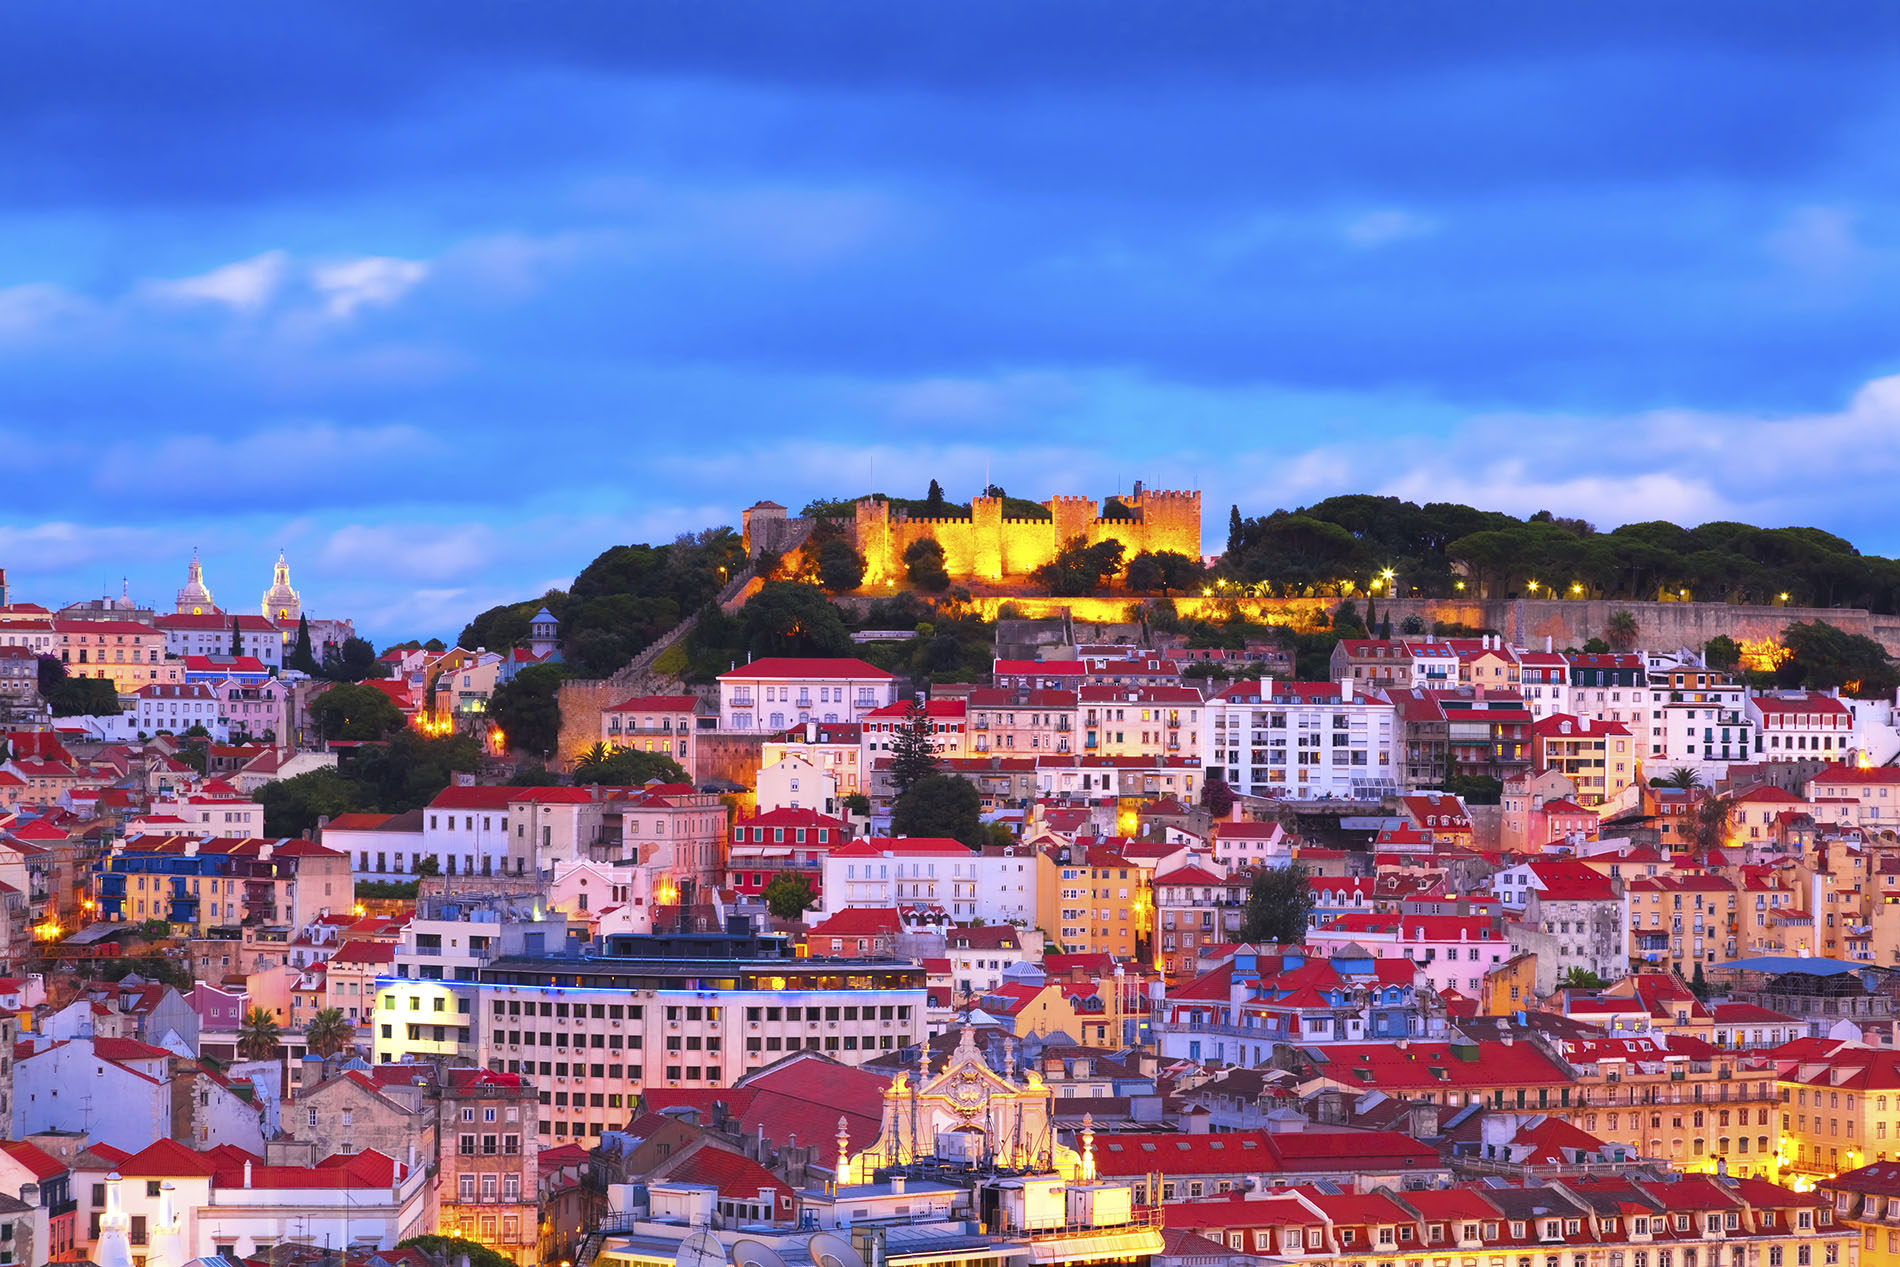 The city of Lisbon at night, Portugal